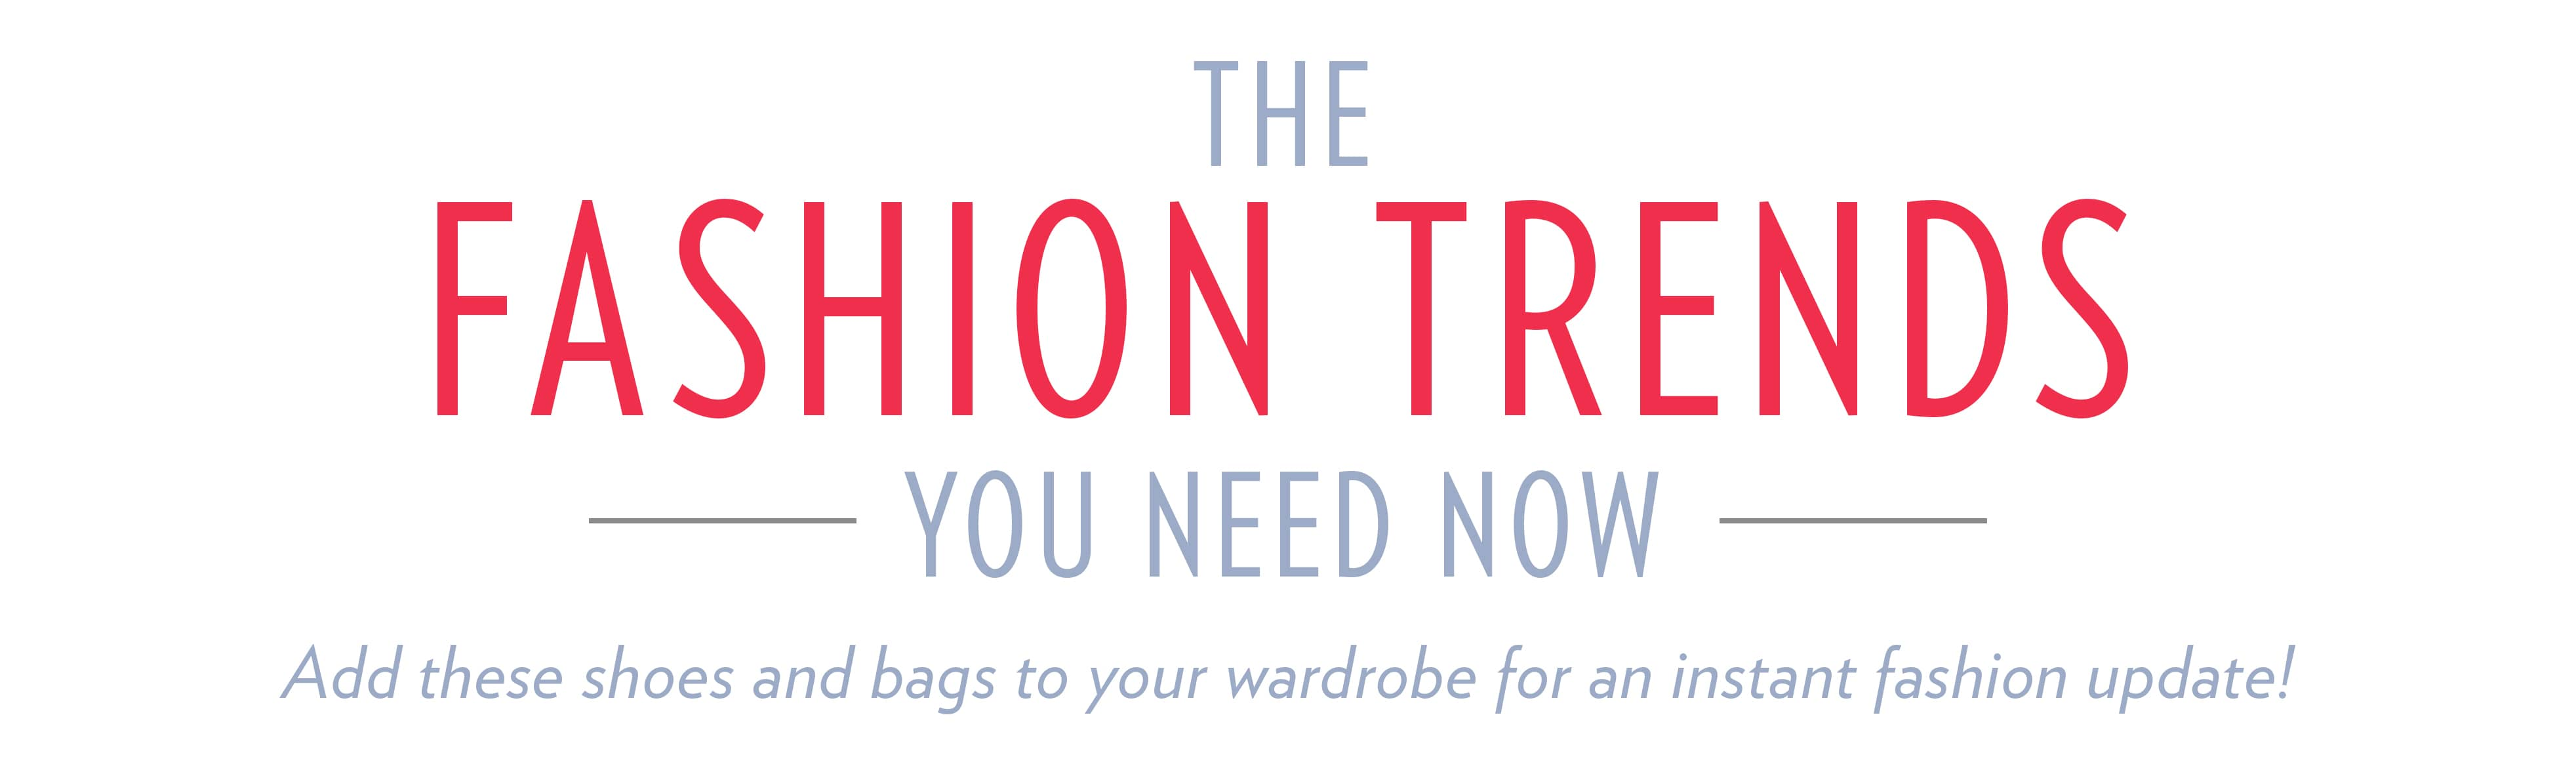 Fashion Trends You Need Now